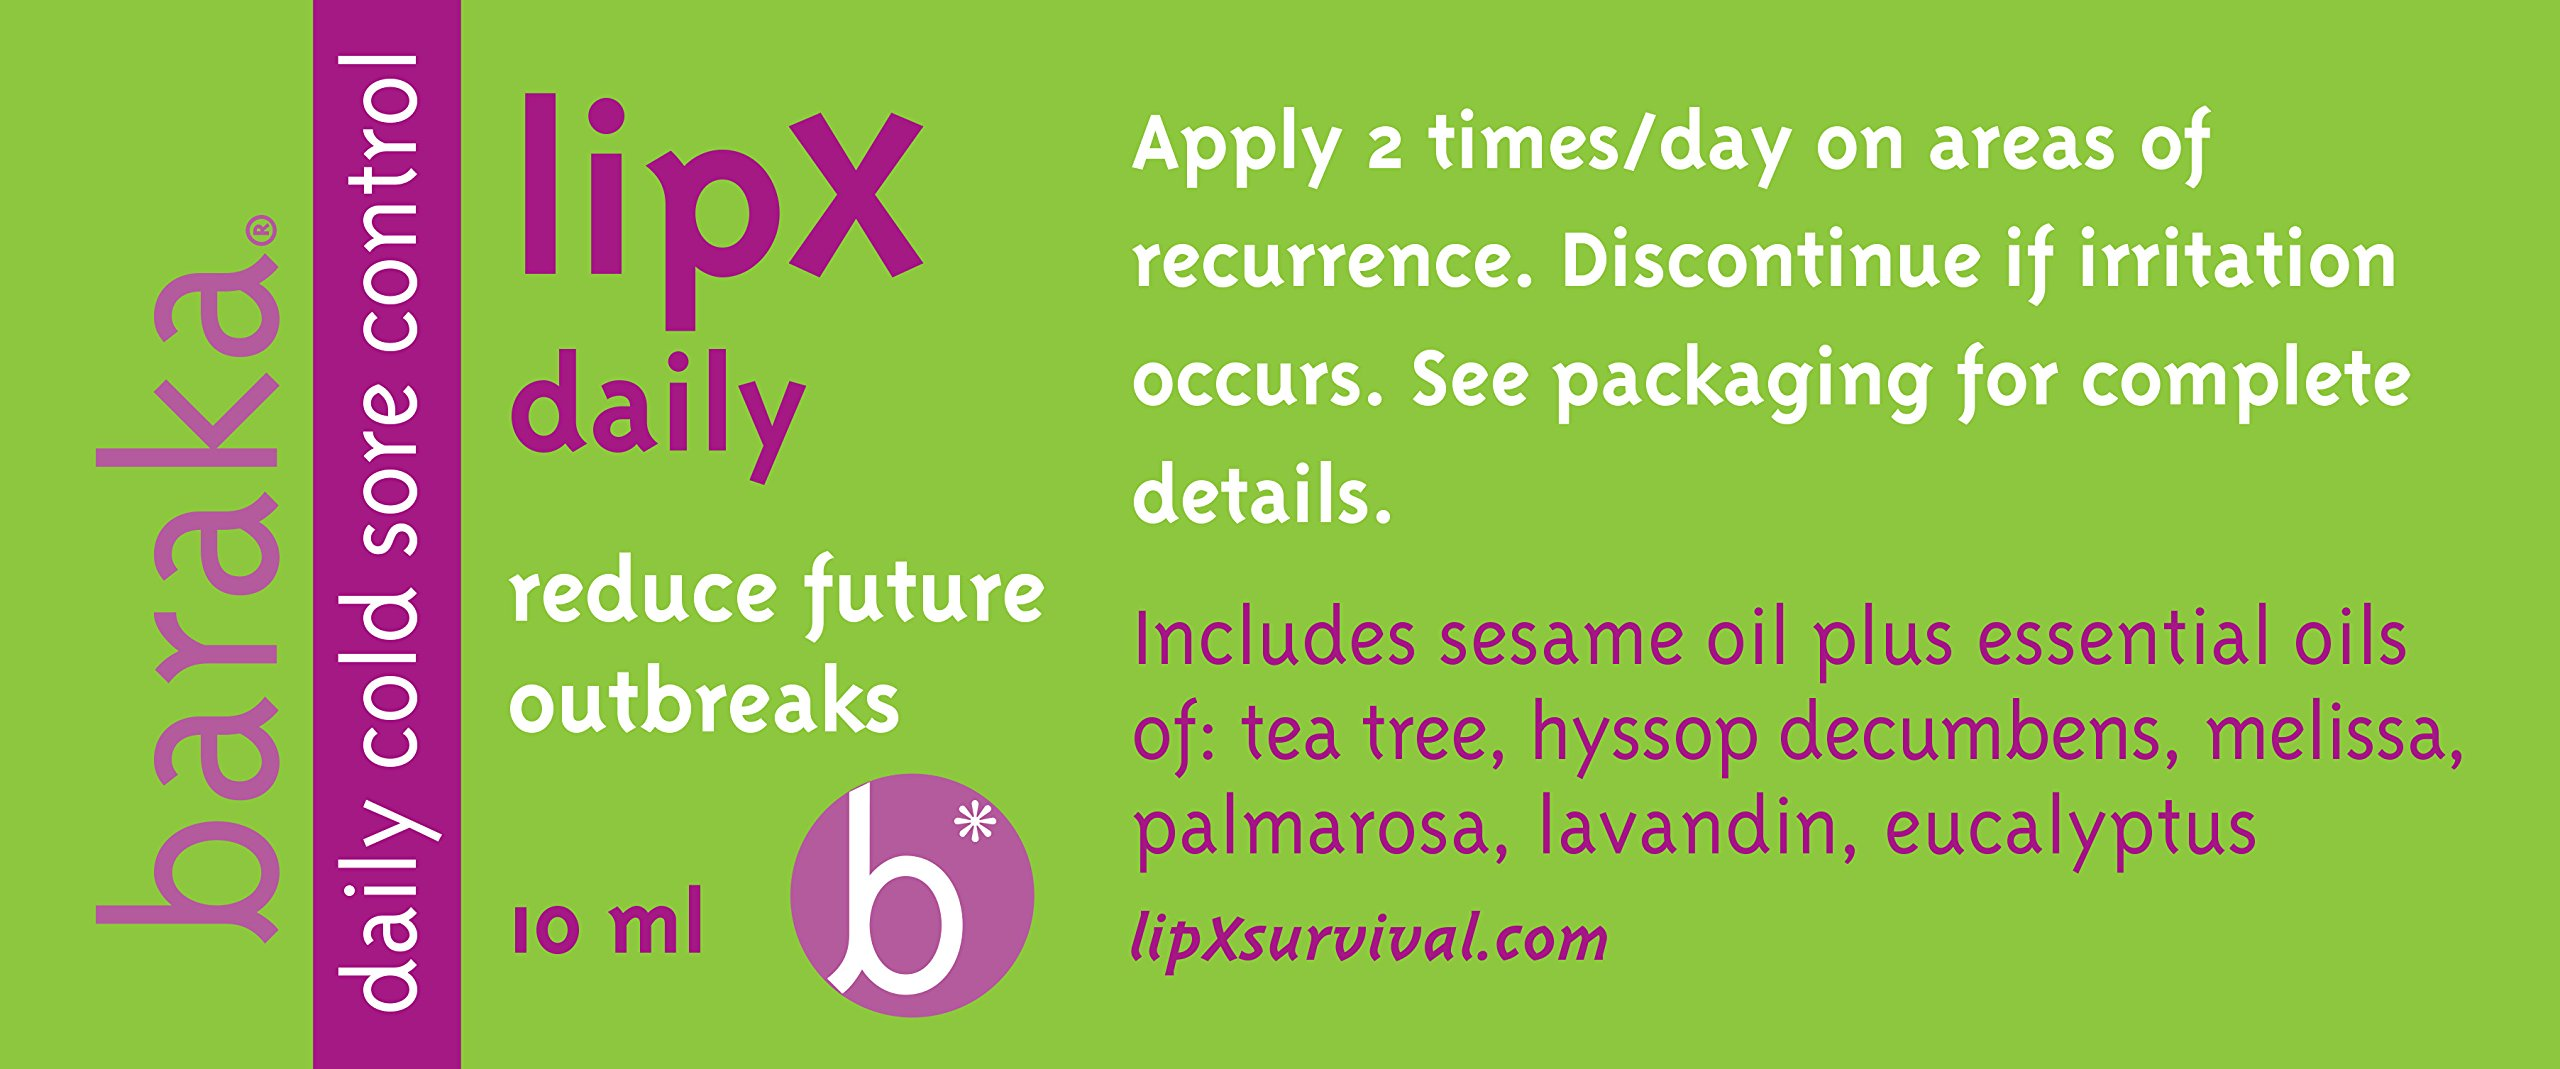 Baraka LipX Daily 10 ml- Daily Maintenance Blend. Fever Blister Cold Sore Control Formula. Reduce Future Outbreaks! All Natural, Organic Essential Oils (1 pk) by Baraka (Image #3)